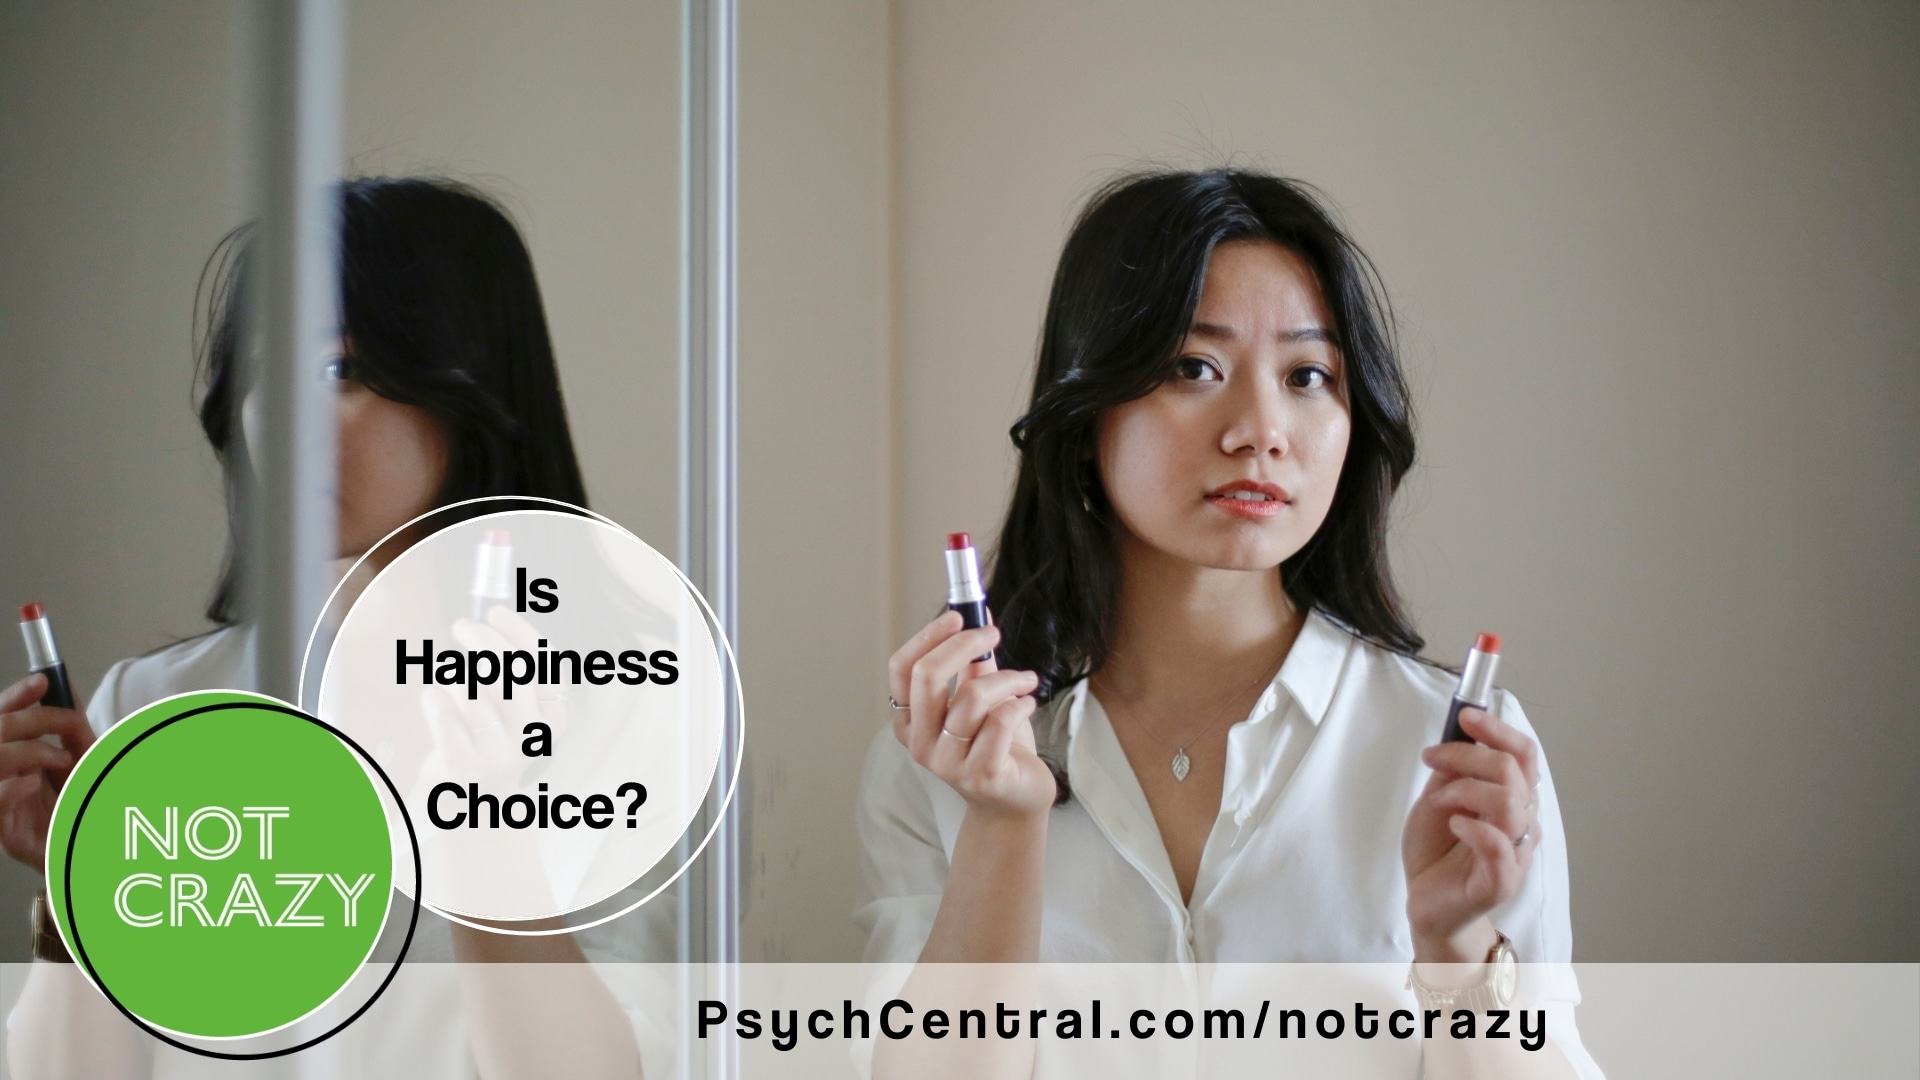 Podcast: Is Happiness a Choice?